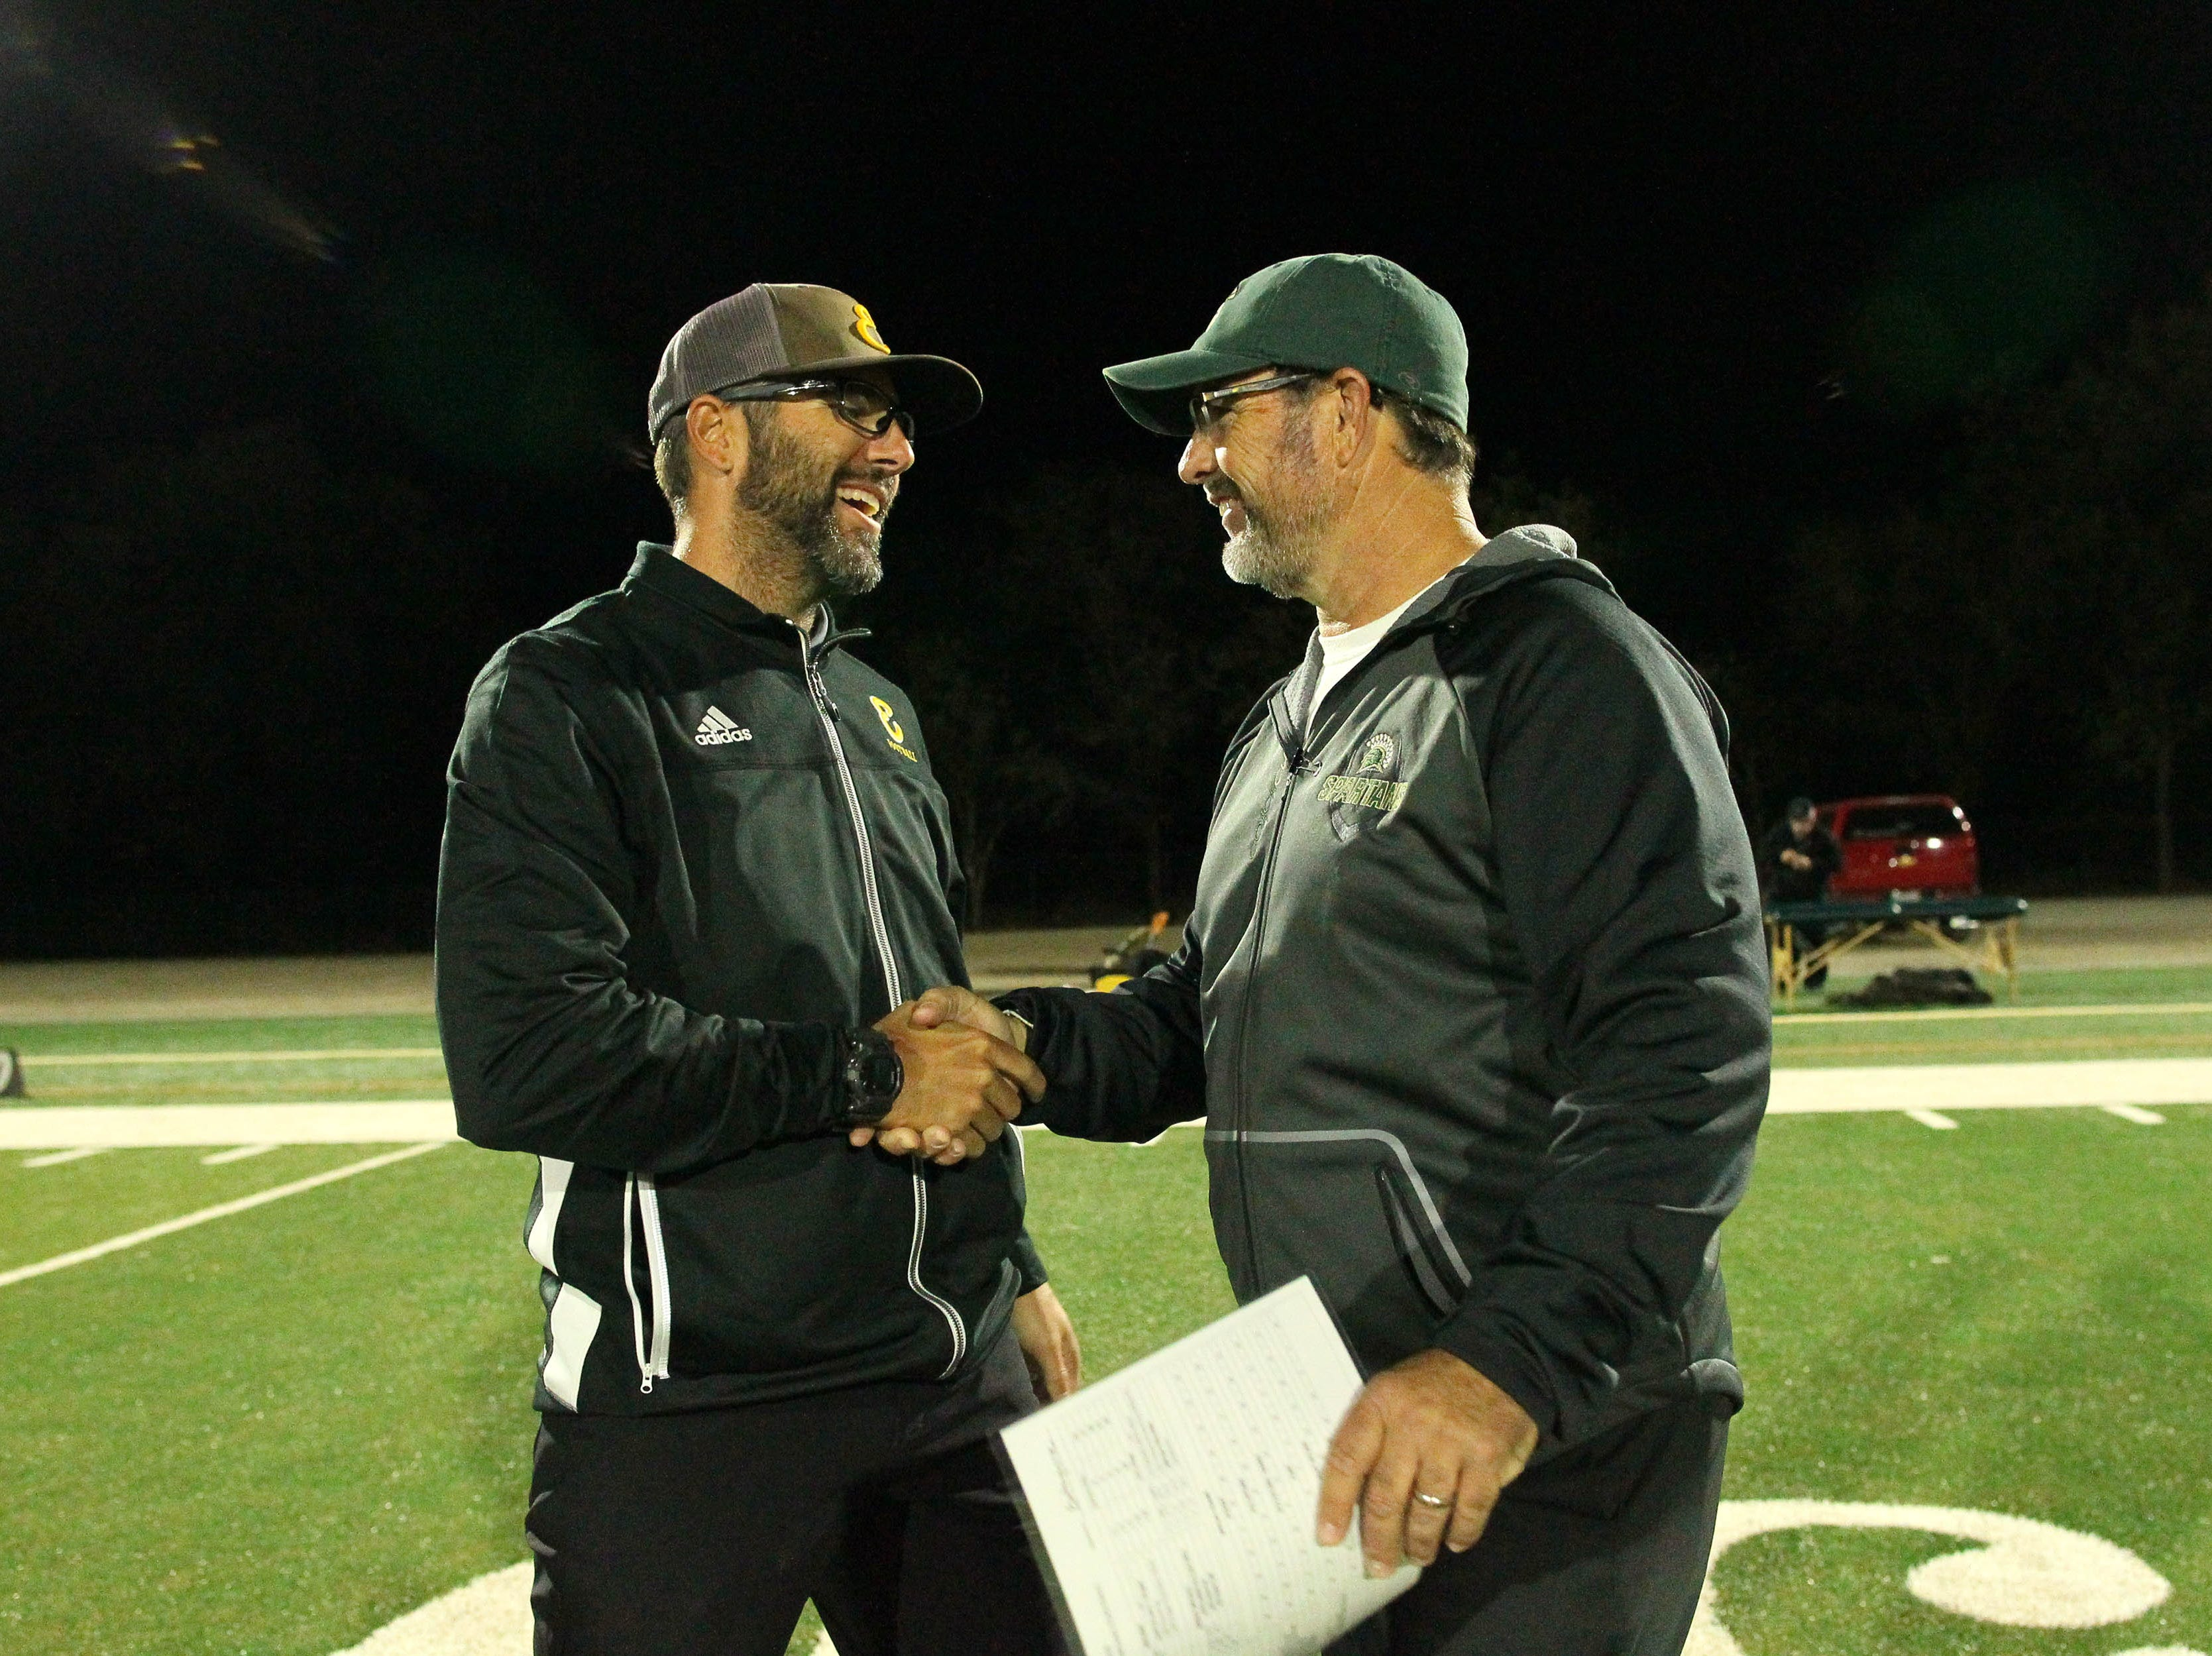 Enterprise Head Coach: Chris Combs, left, and Red Bluff Head Coach: Orlyn L. Culp II, greet each other before the game on Friday night in Red Bluff. 